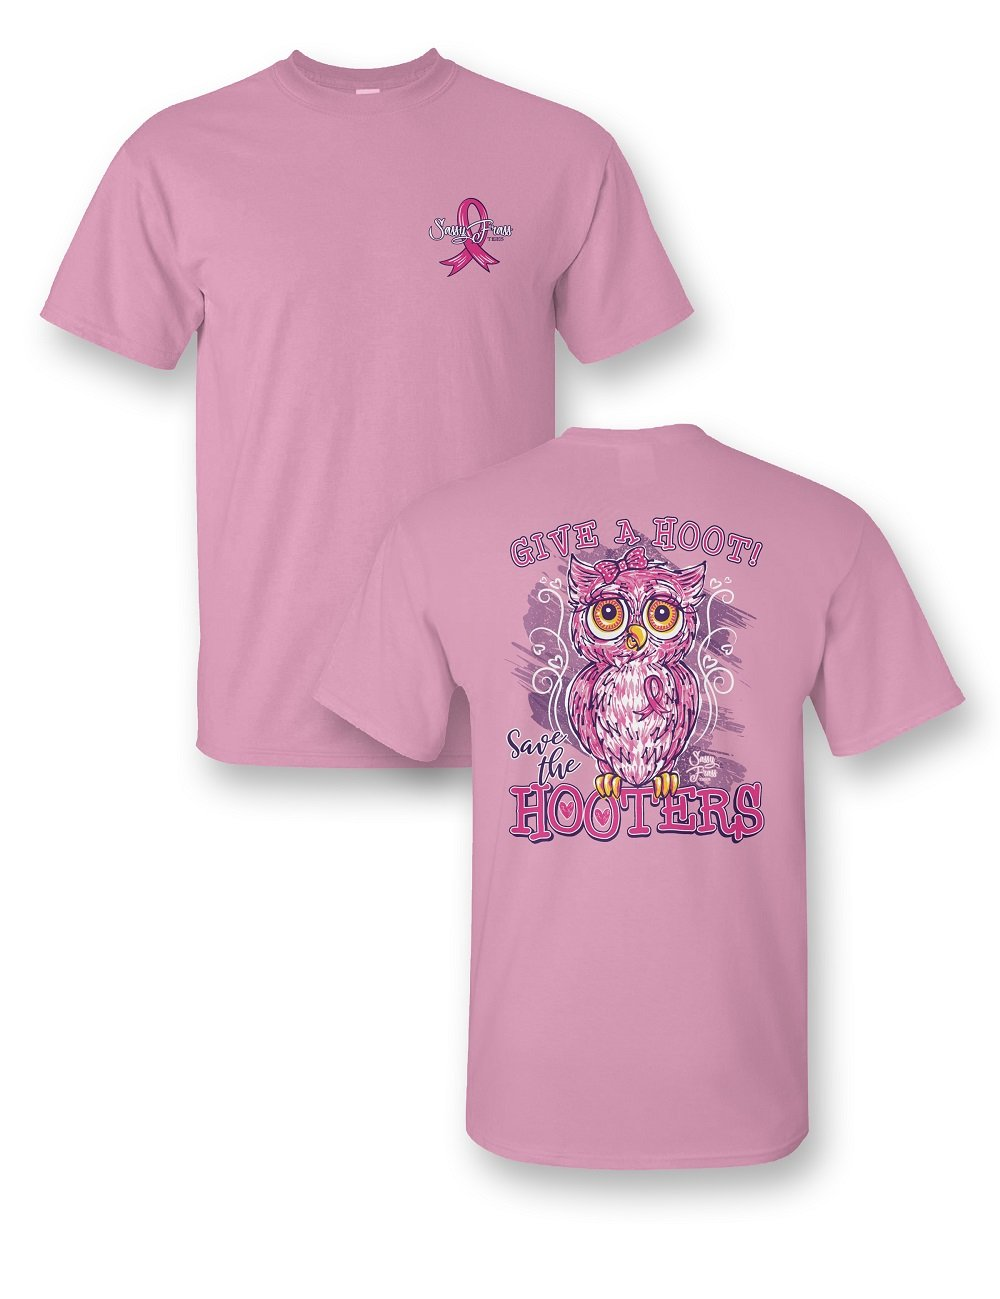 Sassy Frass Give a Hoot Save the Hooters Owl Breast Cancer Pink Ribbon Bright Girlie T Shirt